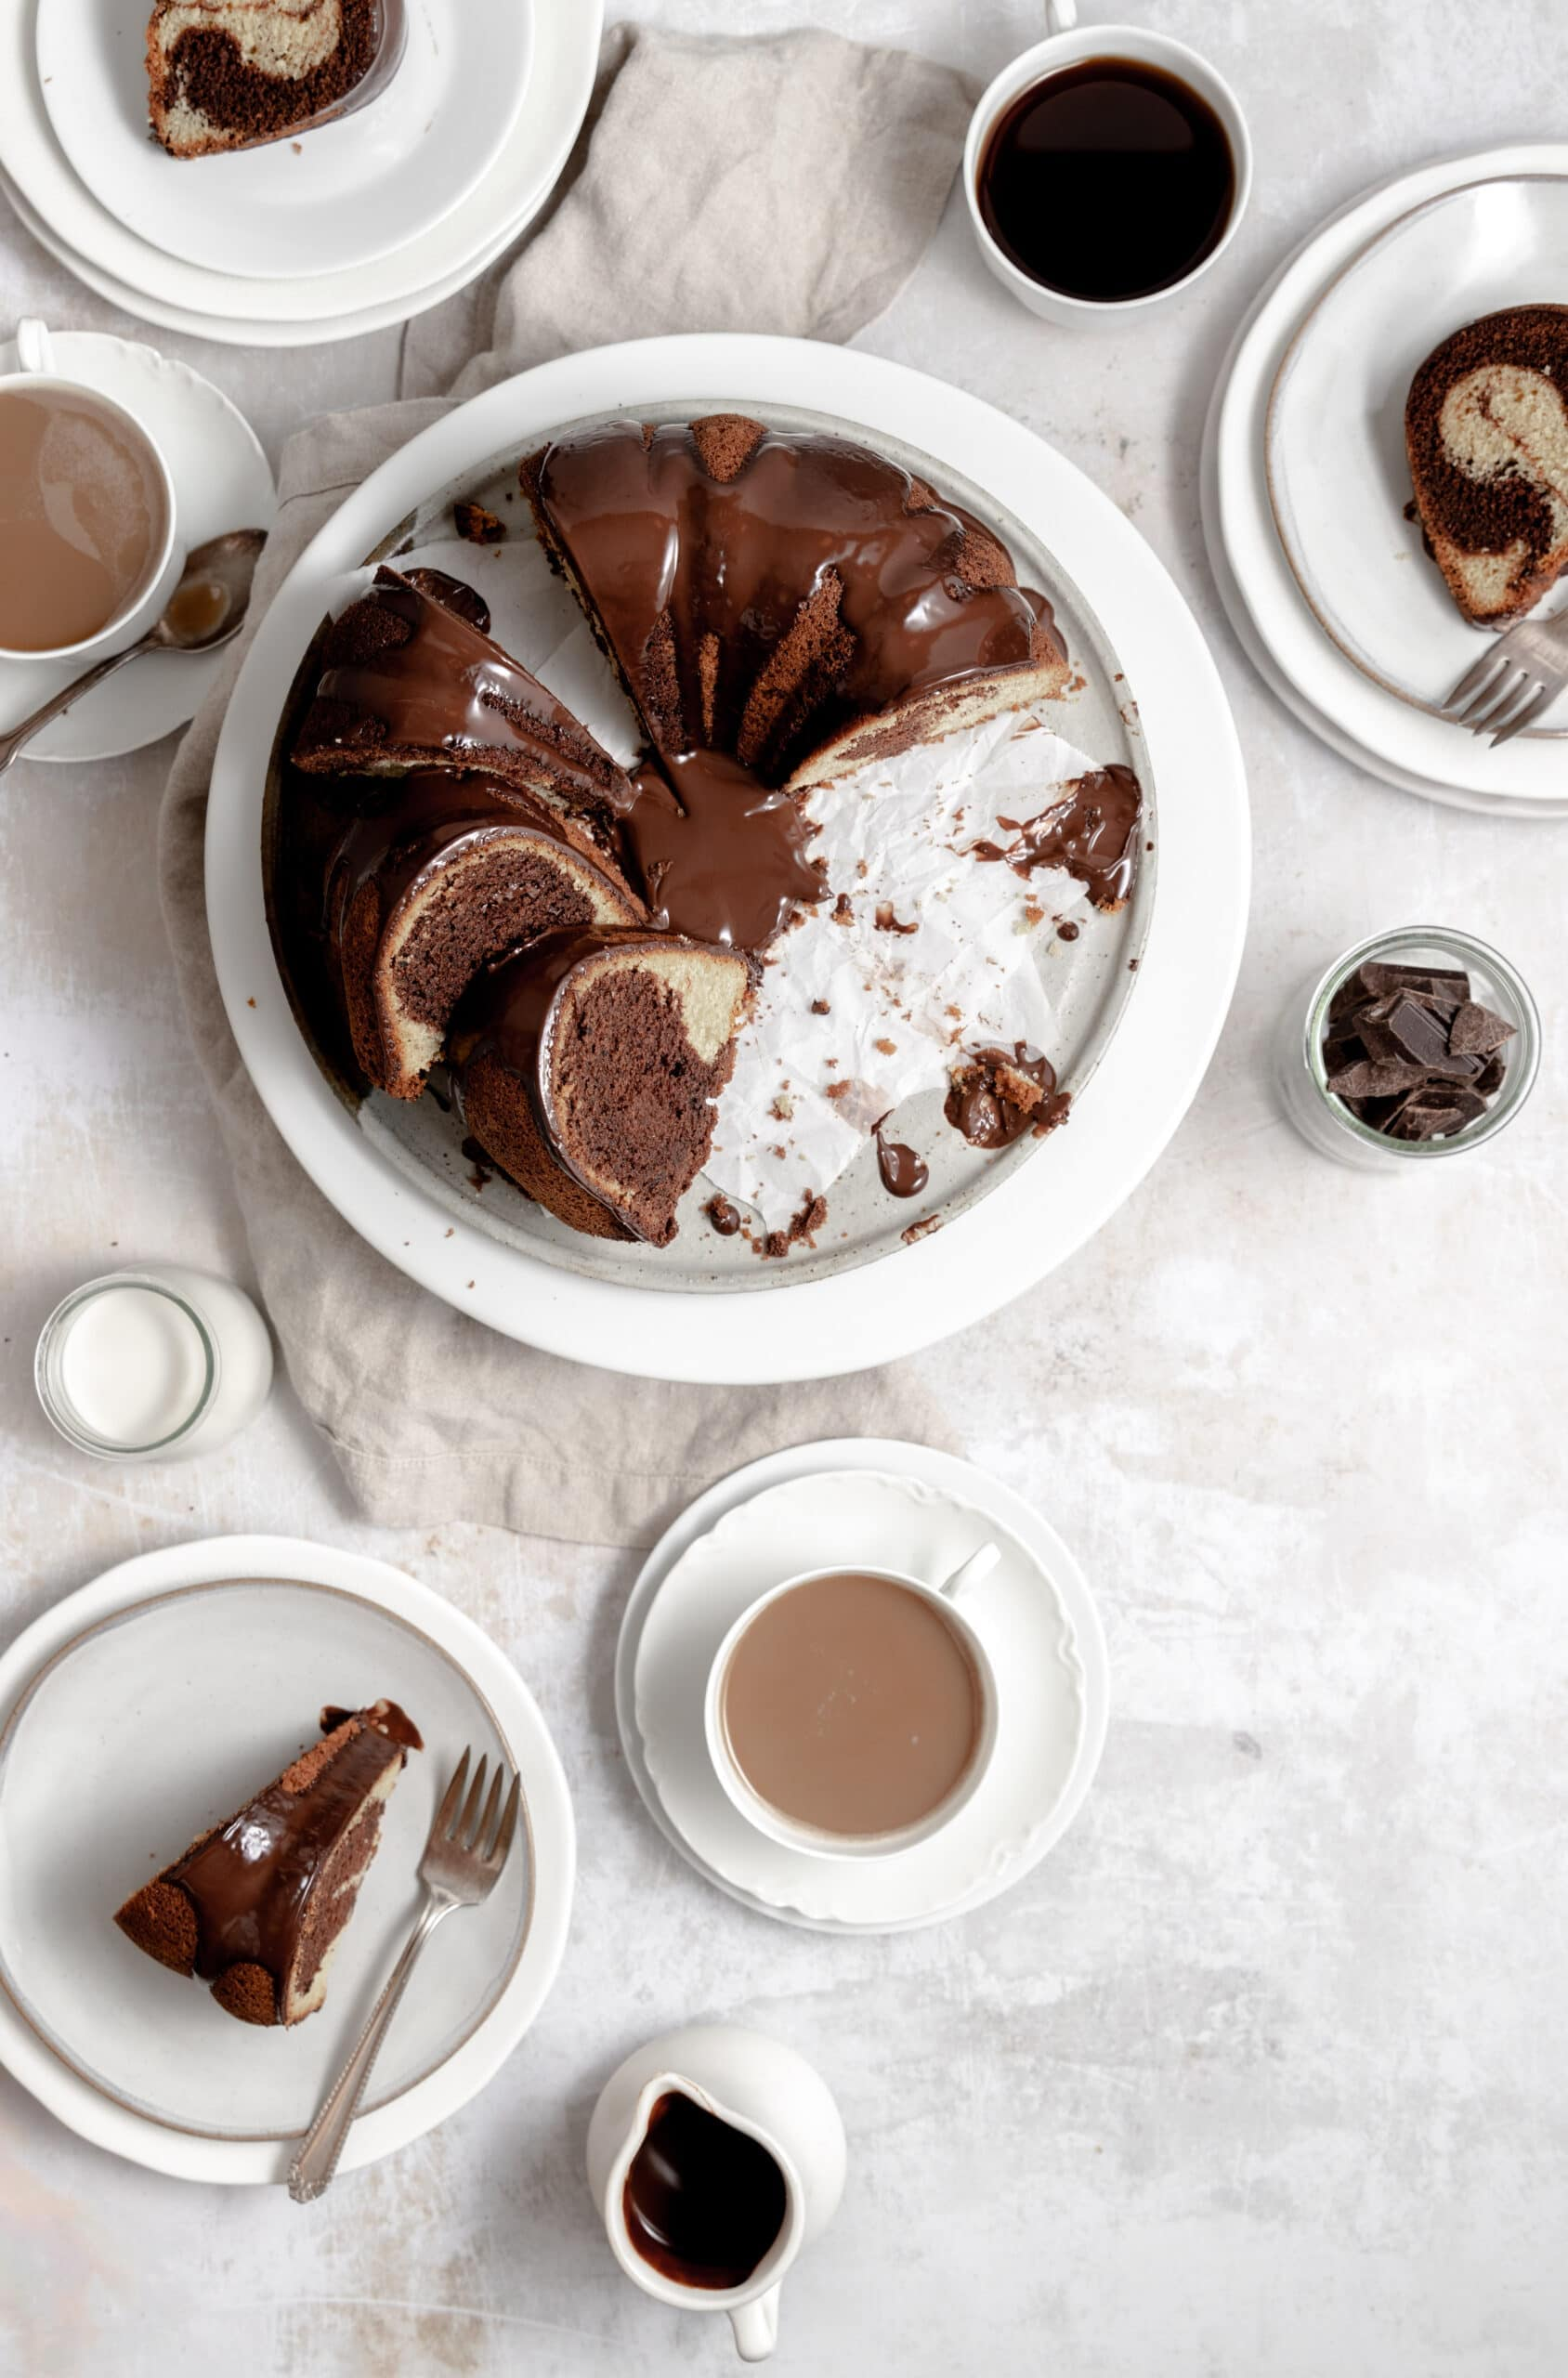 Image of marmorkuchen - german marble bunt cake that is swirled chocolate and vanilla batter- sitting on a white cake stand with chocolate ganache glaze and coffee cups sitting around.ddd